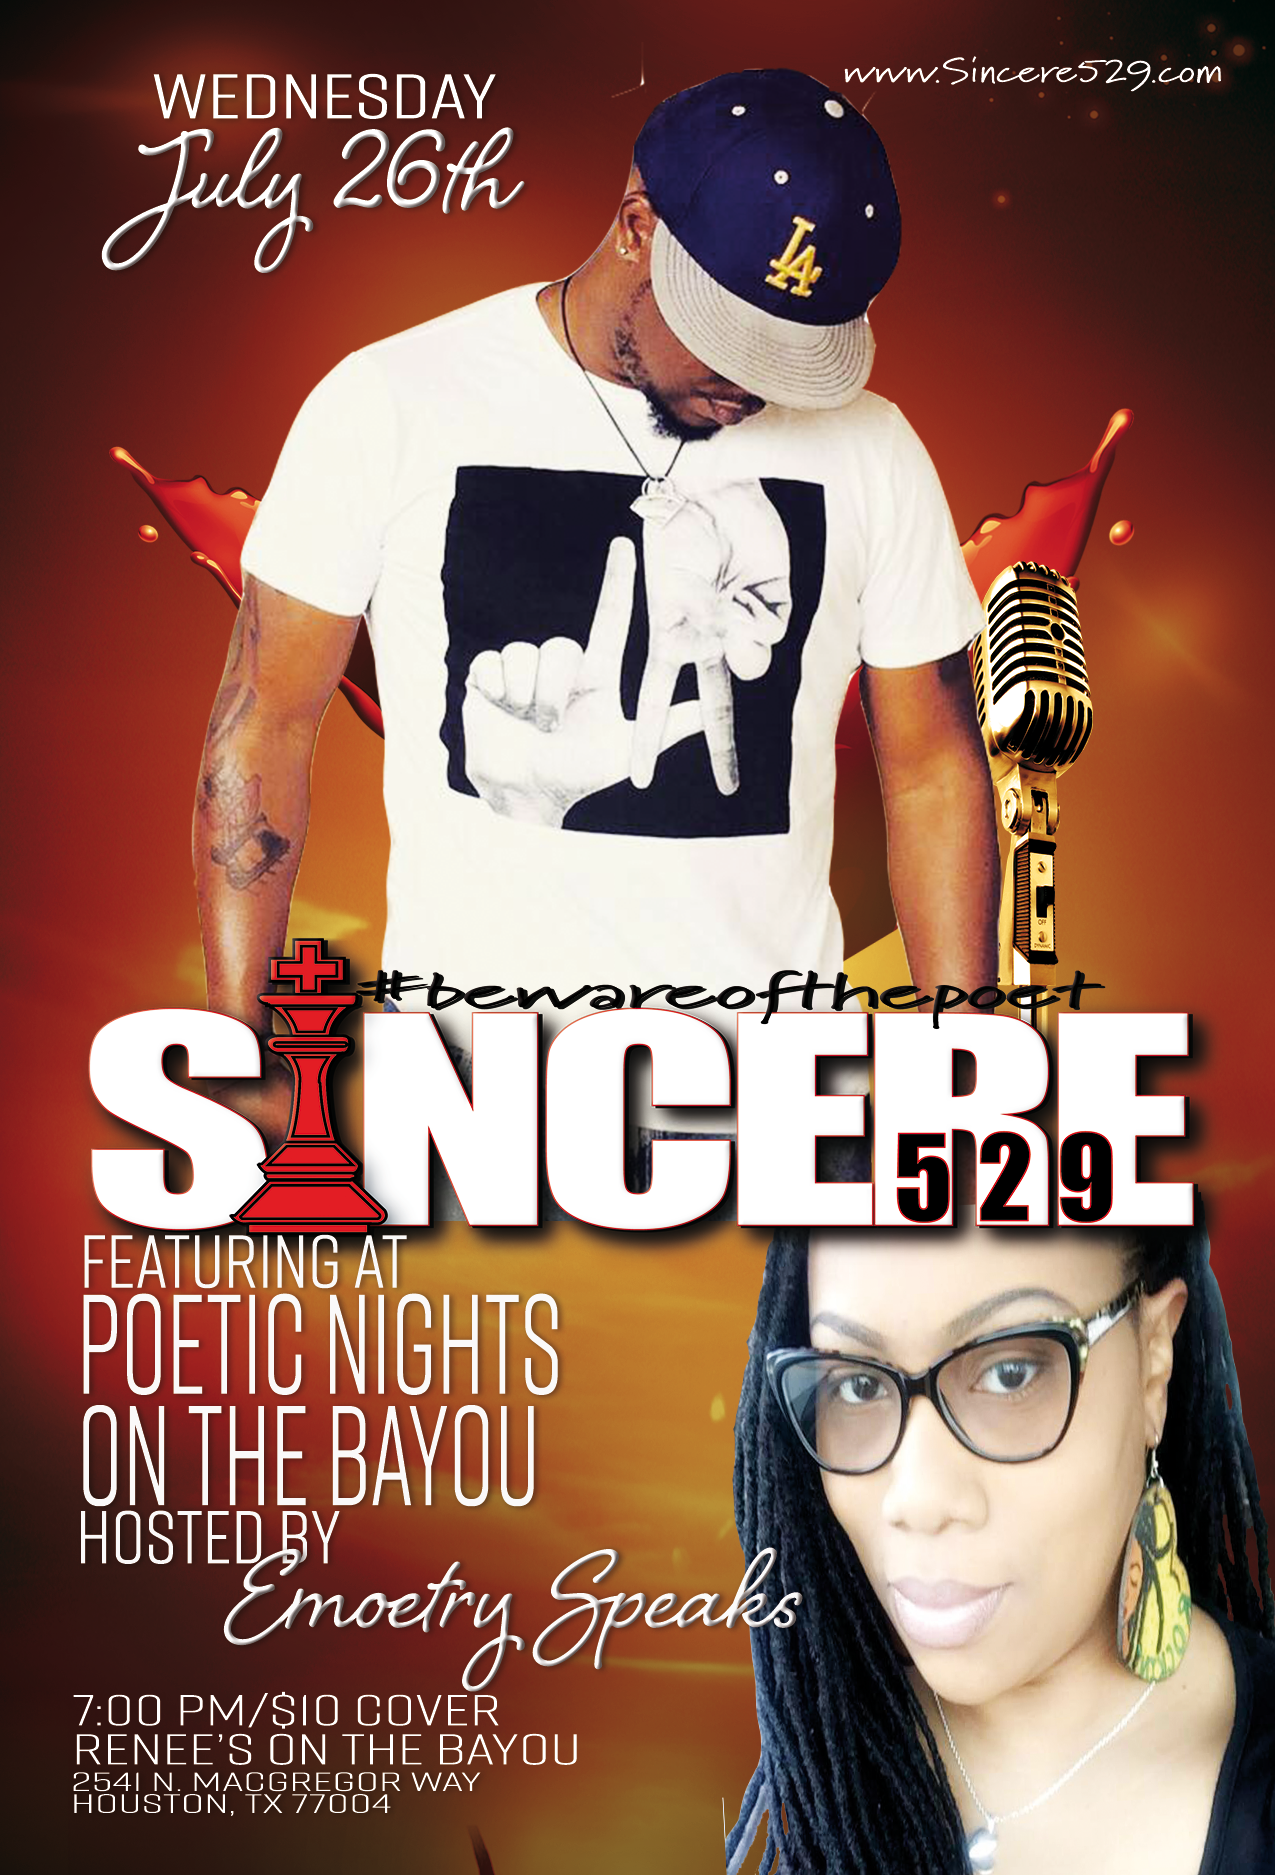 Sincere529 at Poetic Nights on the Bayou